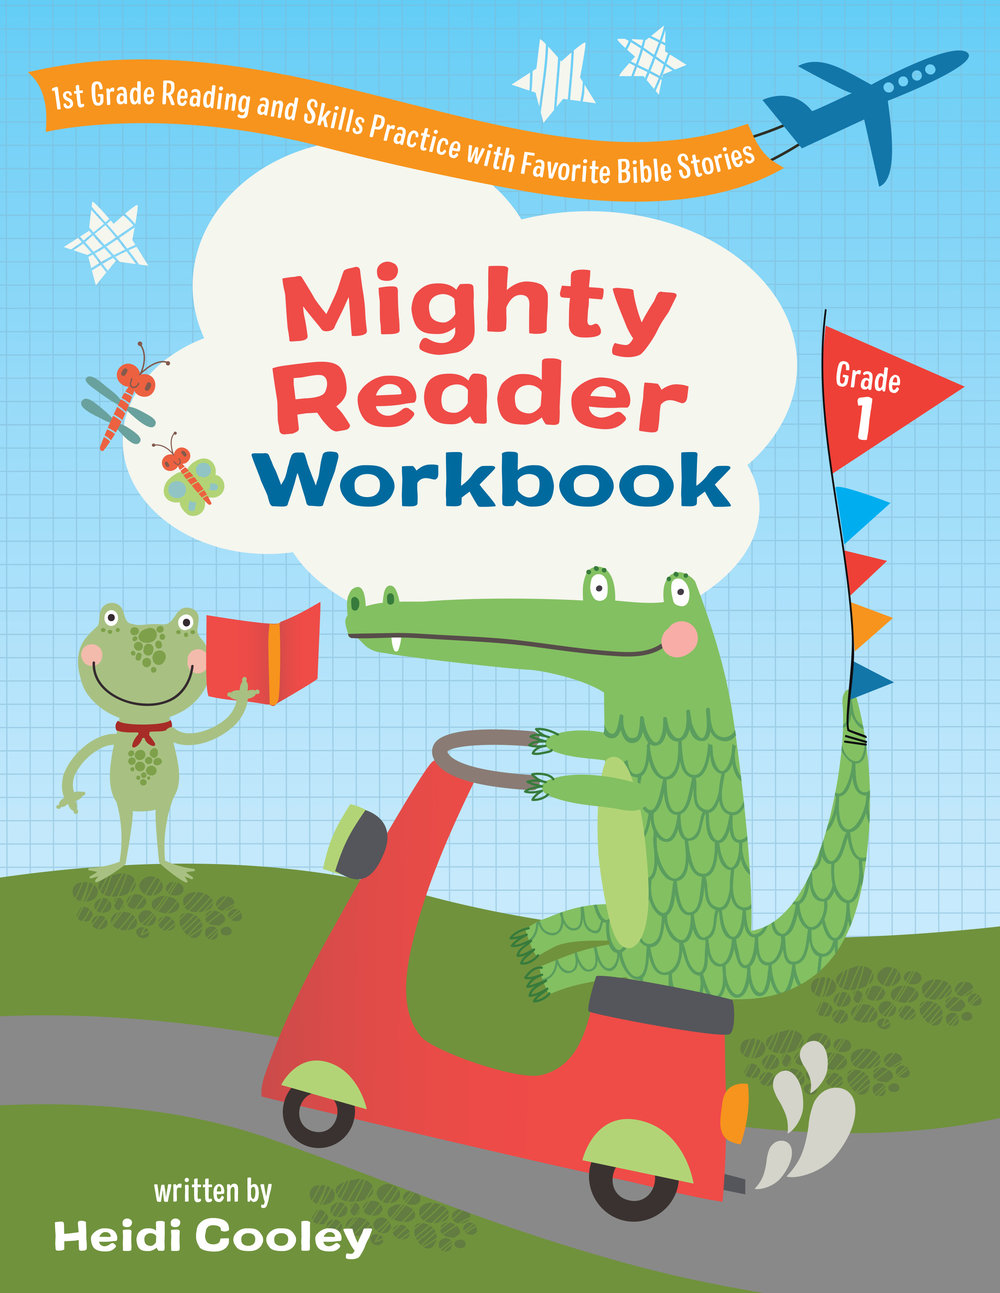 9781535901260_MightyReaderWorkbook_1stGrade.jpg